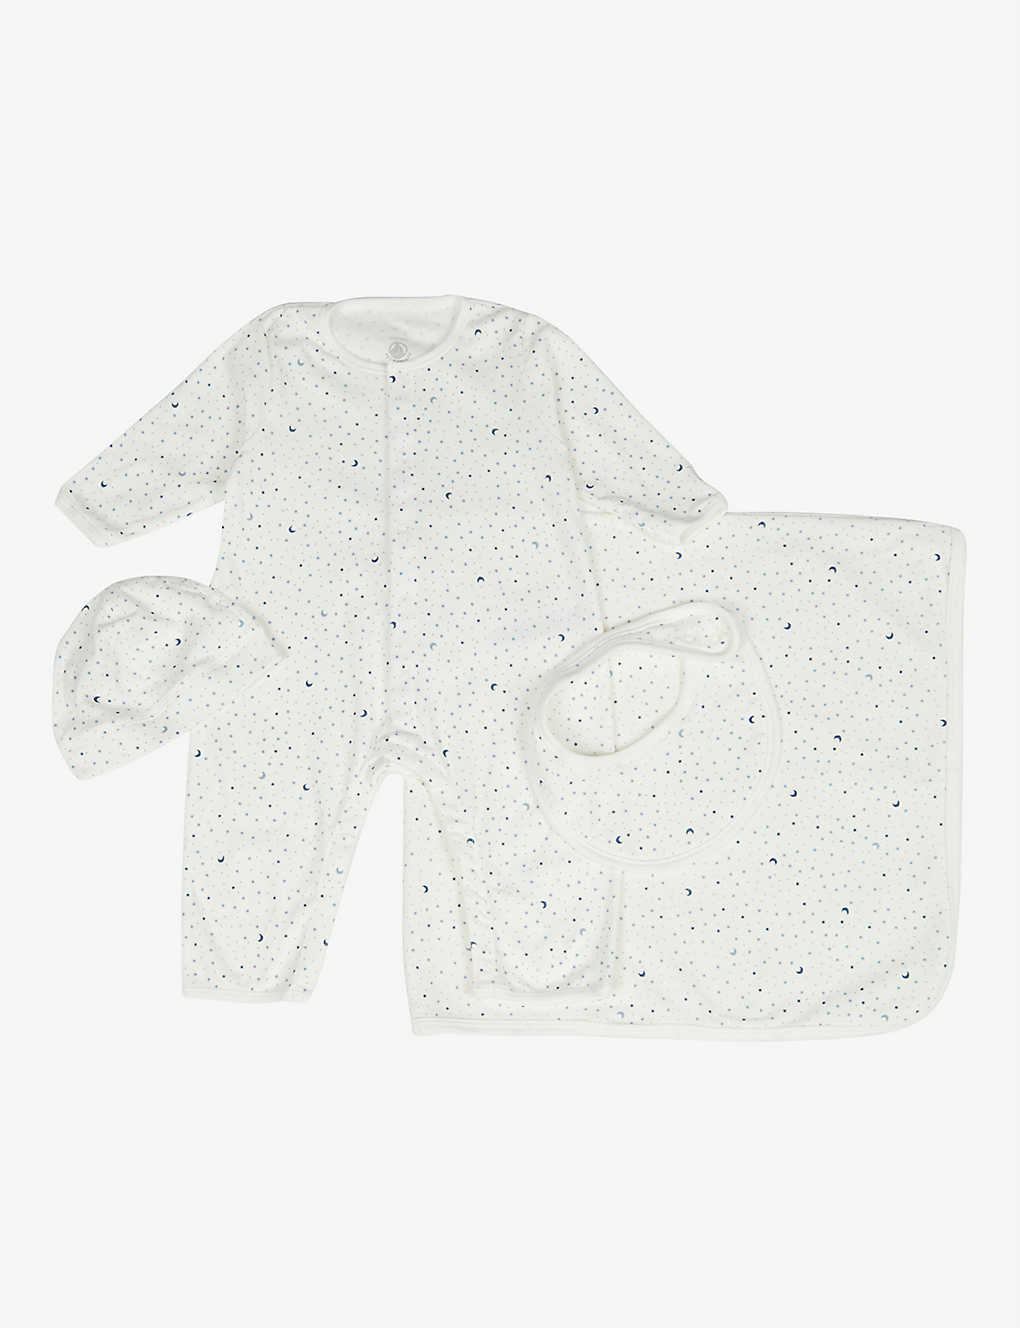 PETIT BATEAU: Moon-print organic-cotton baby grow, hat, bib and blanket set 0-12 months